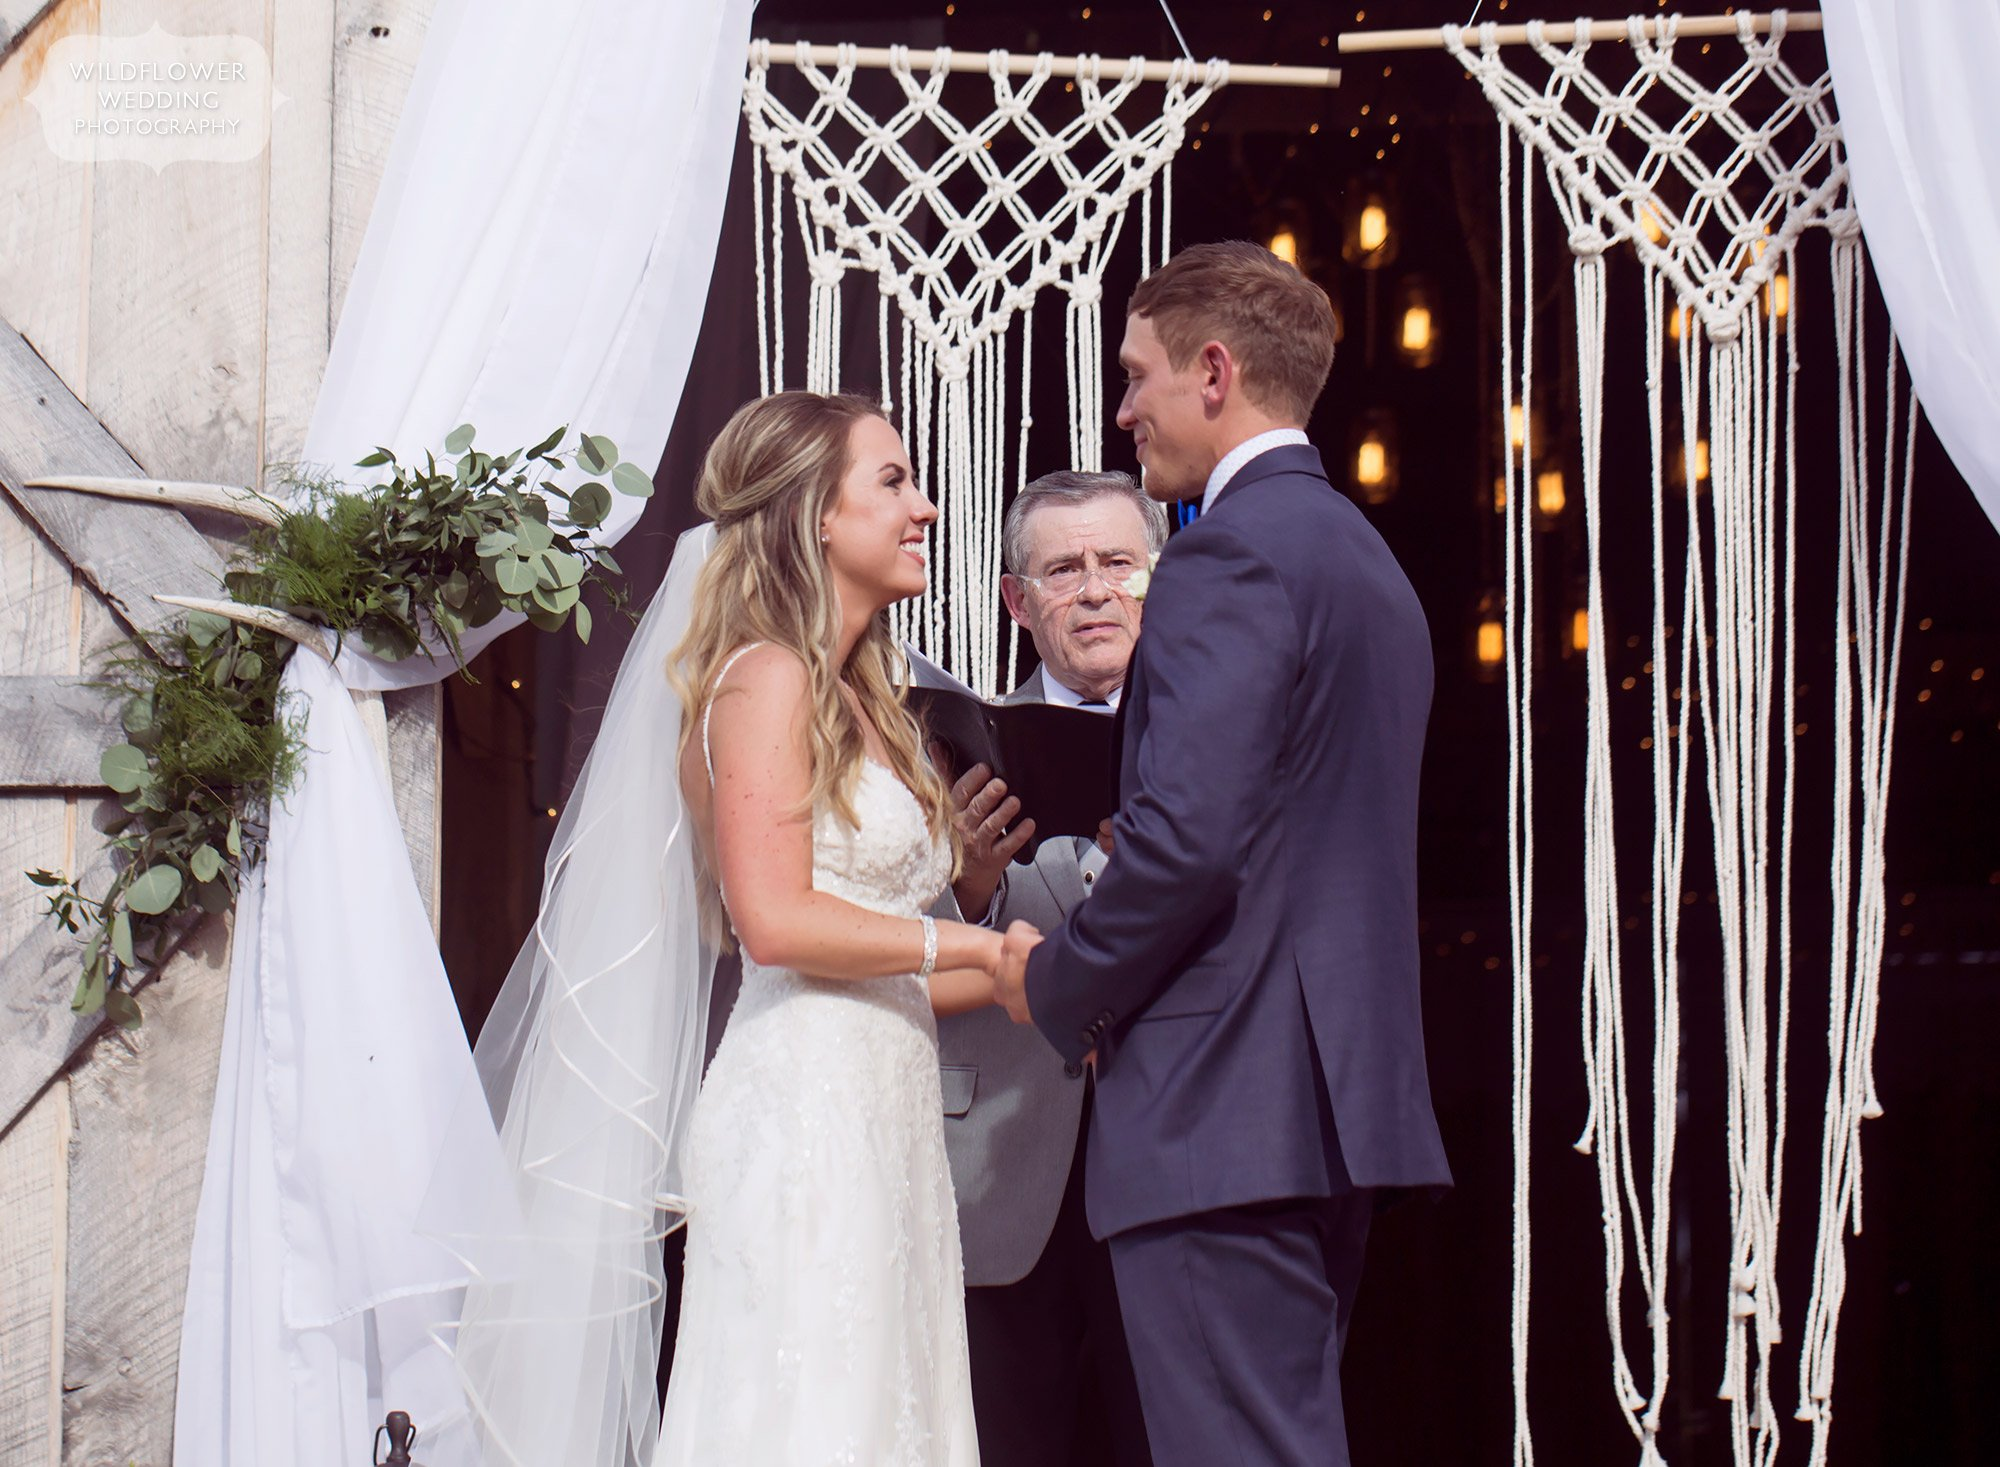 The bride and groom exchange vows in front of this white woven macrame backdrop in the barn doorway at Kempker's Back 40.